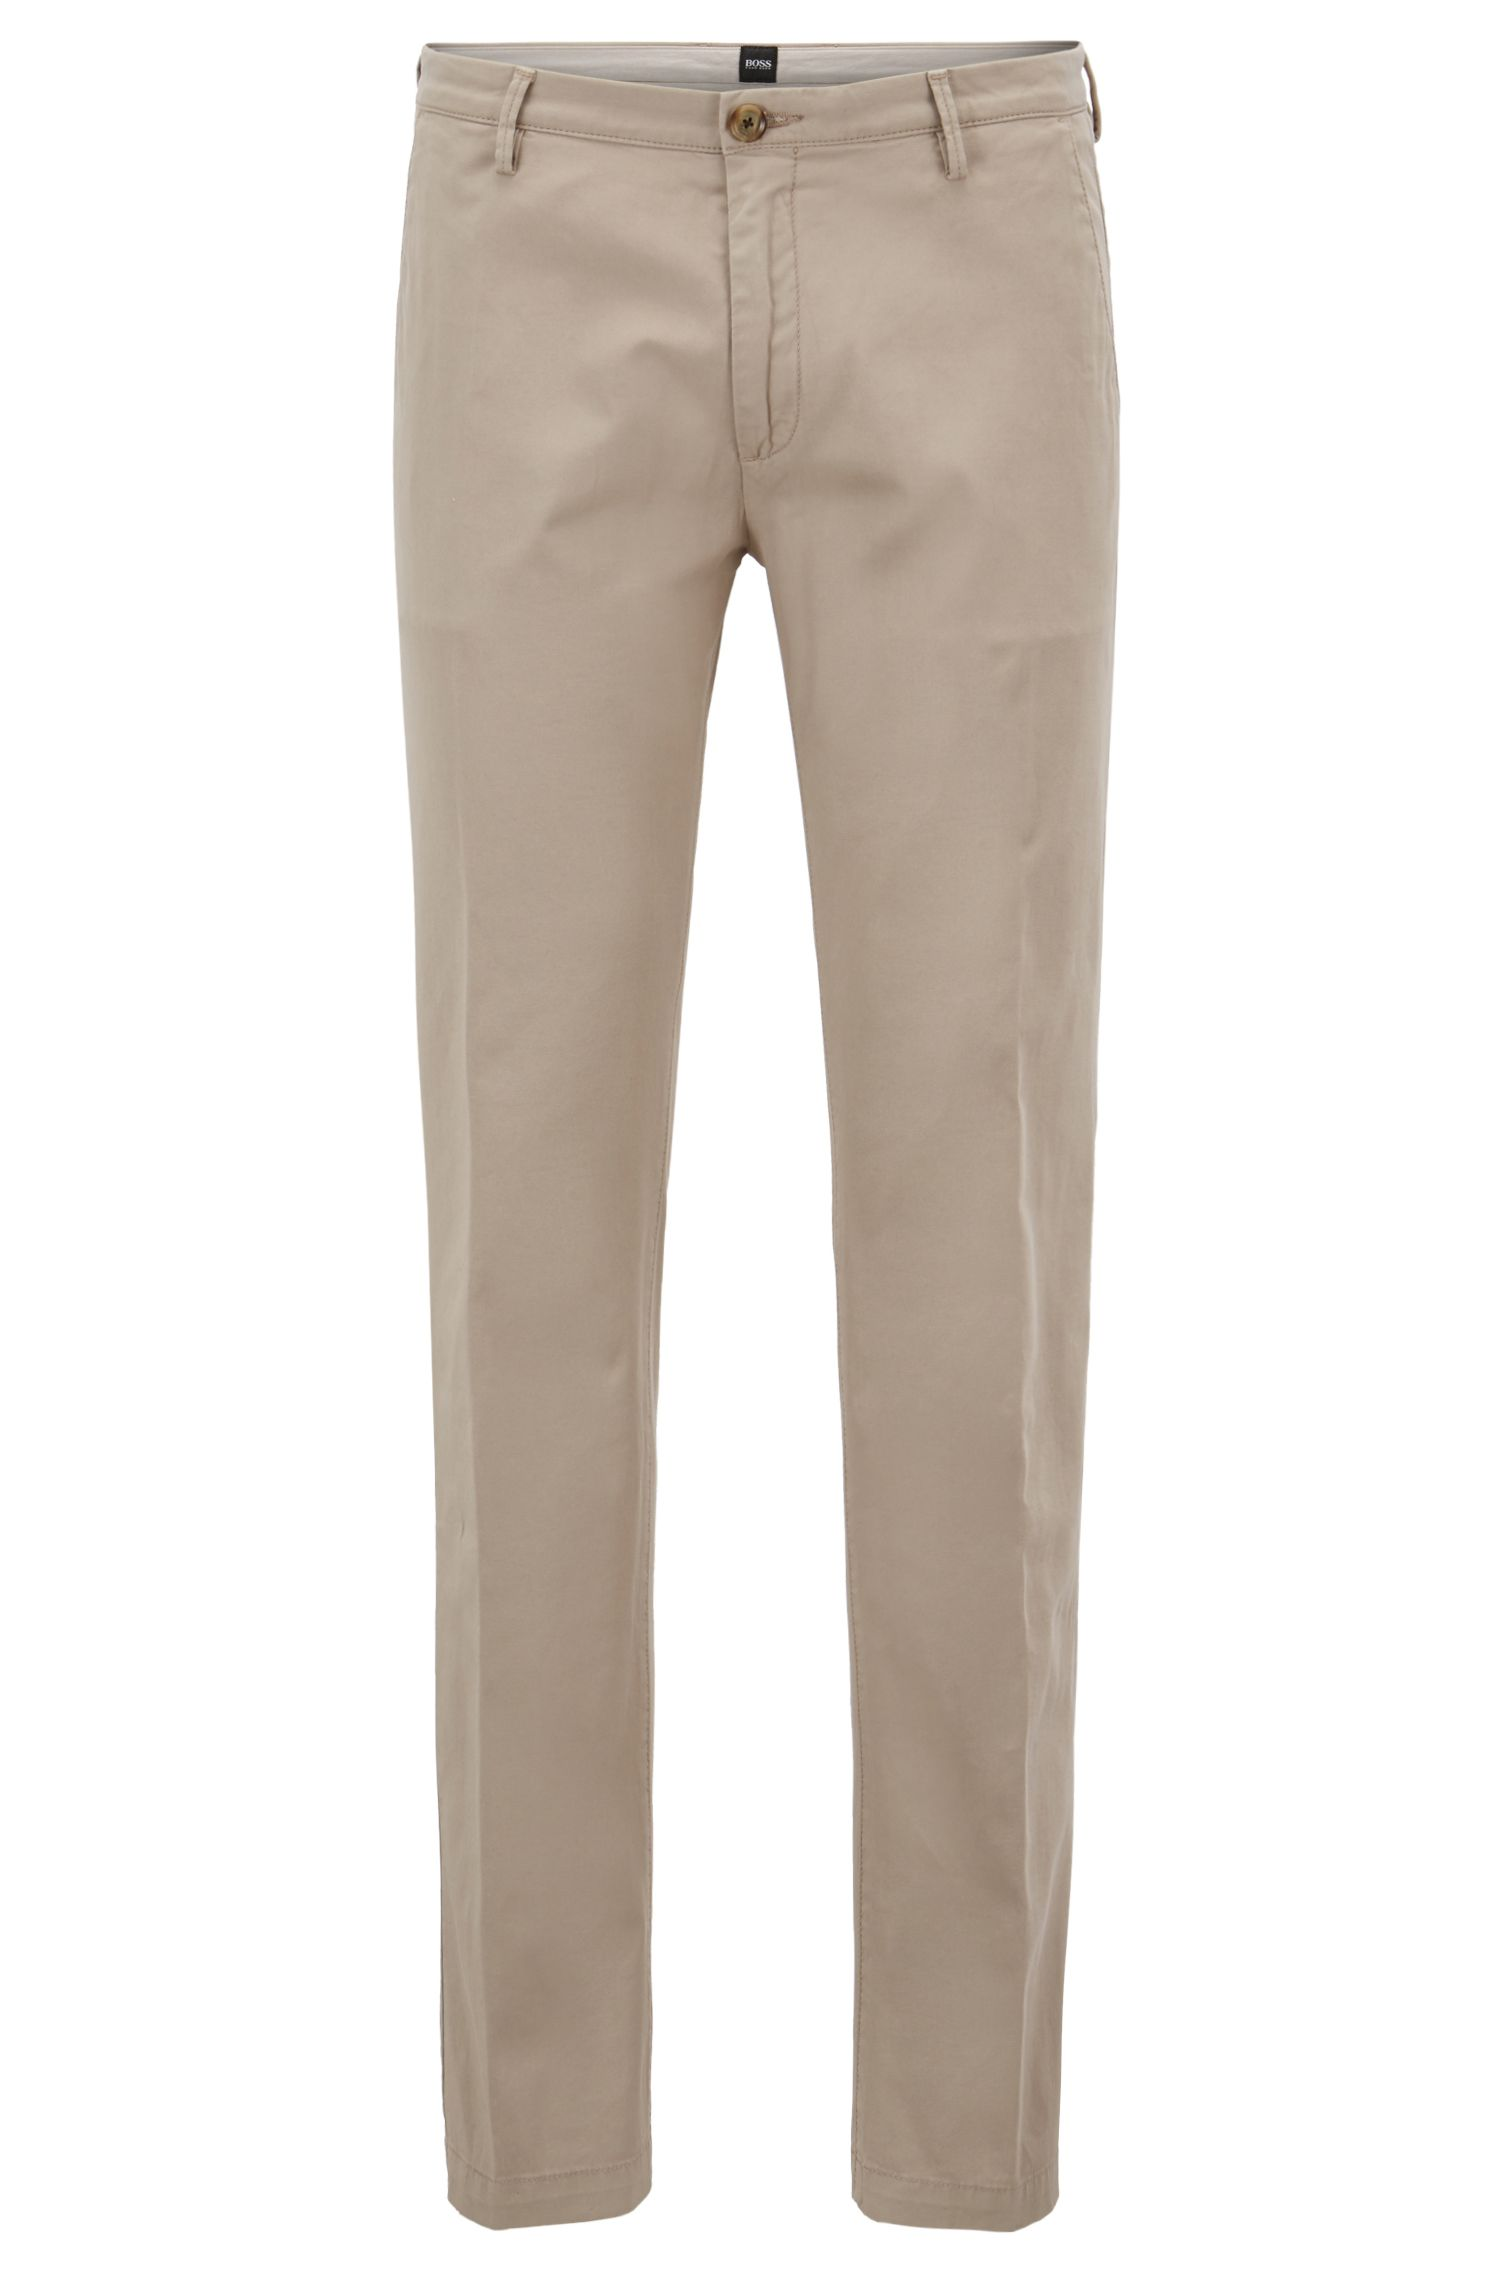 Cotton Stretch Chino Pants, Slim Fit | Rice D